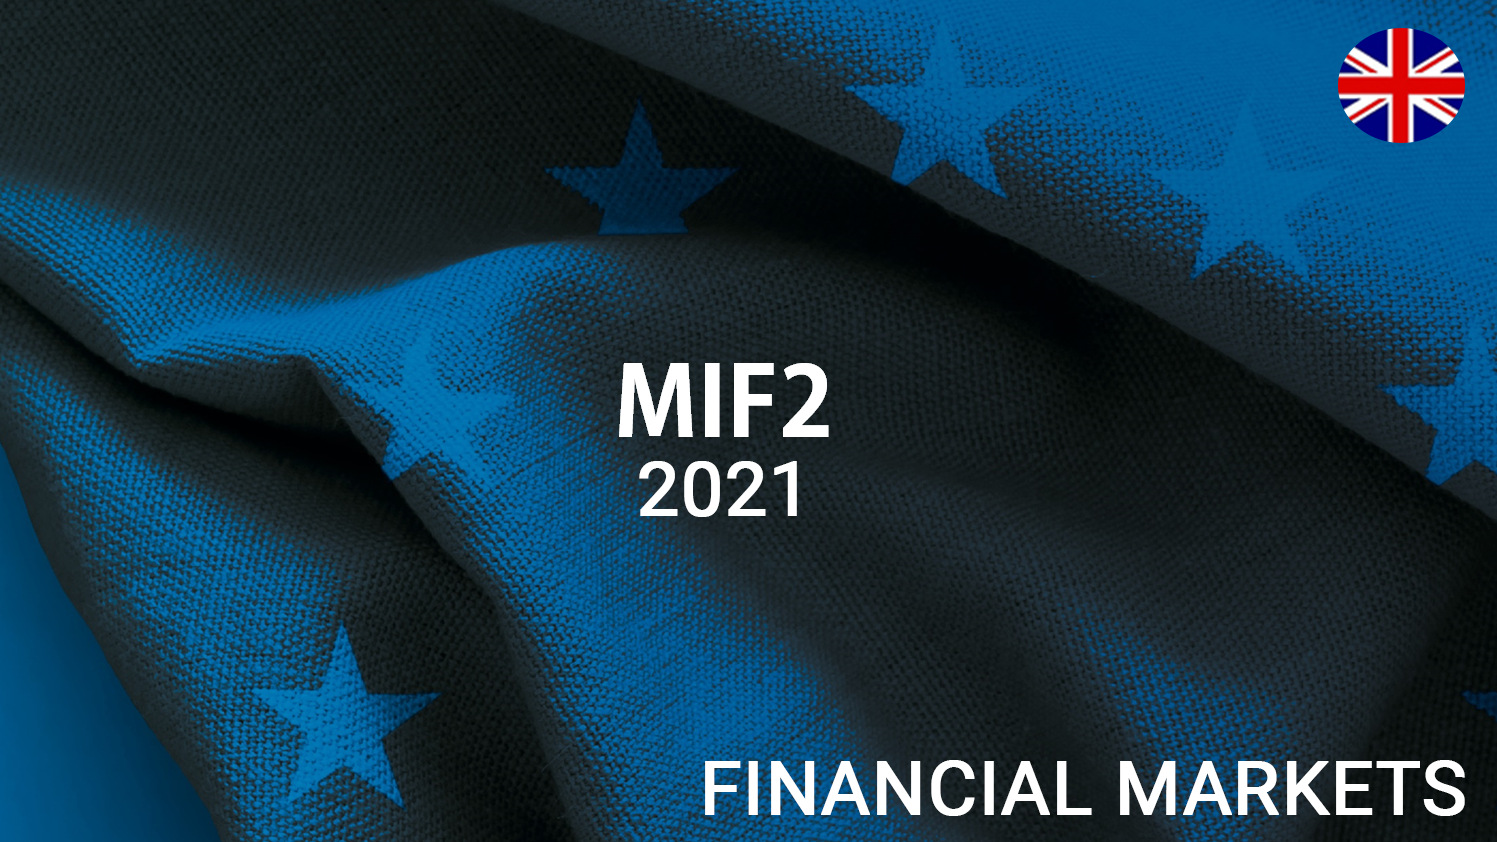 MIFID2 - Financial Market 2021